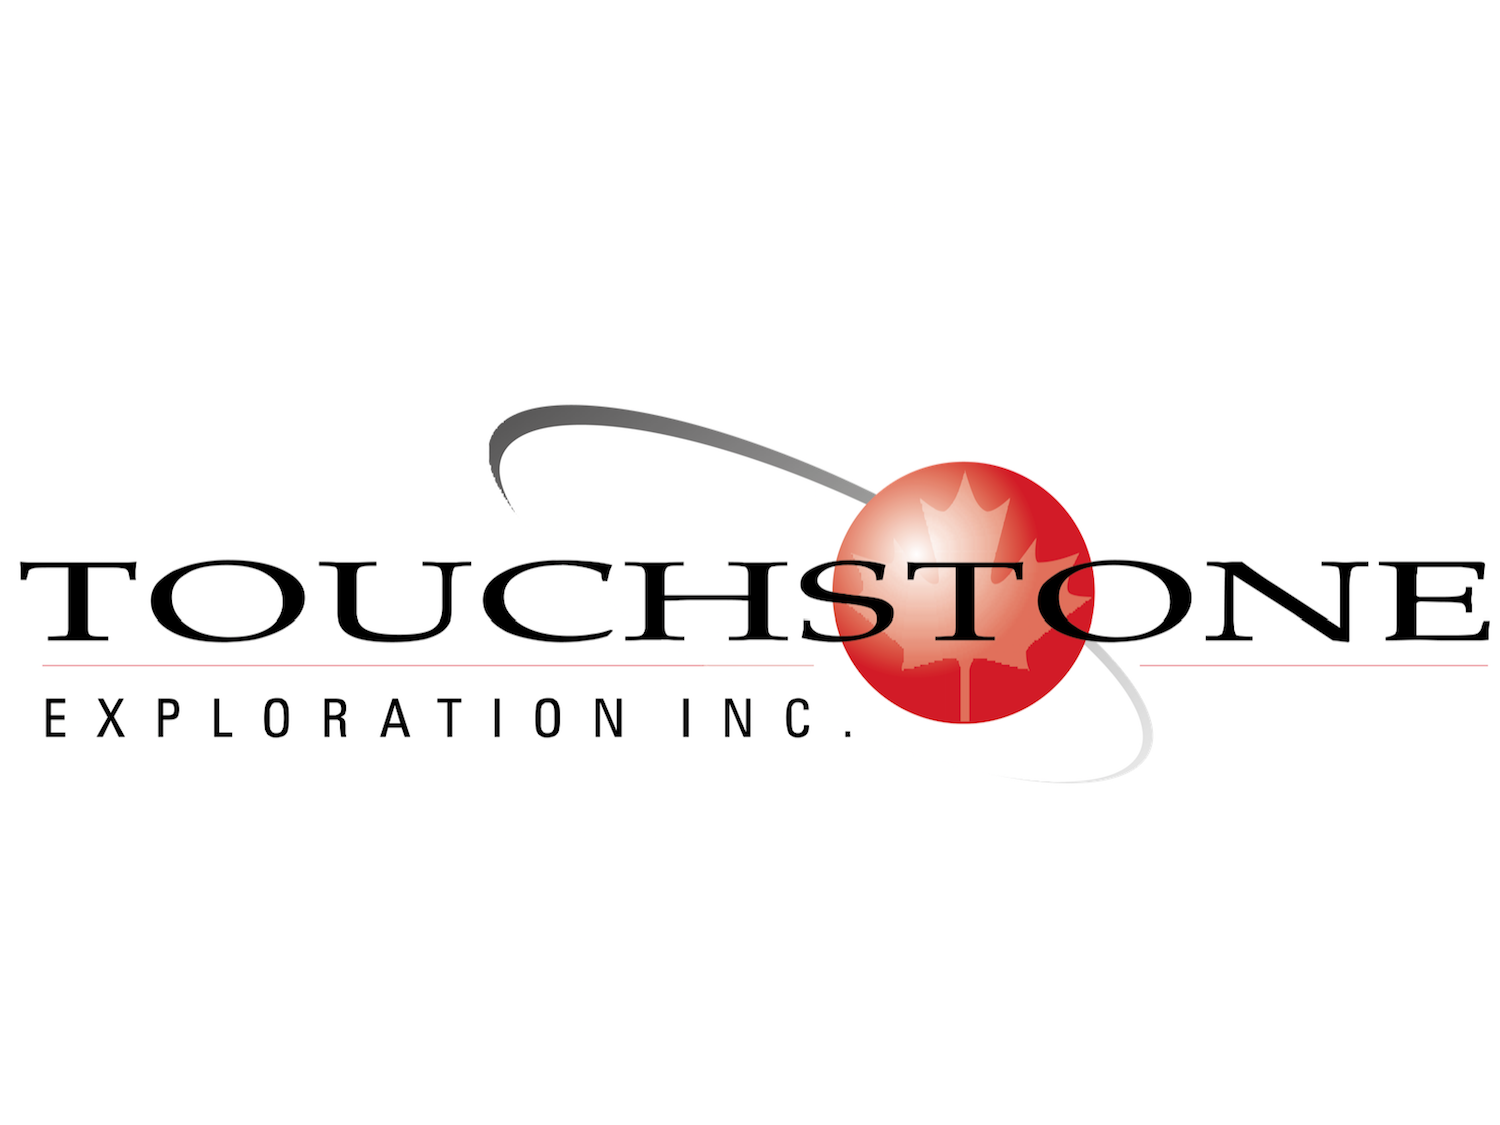 Touchstone Exploration reveals strong progress in 2019 reserves report (TXP)